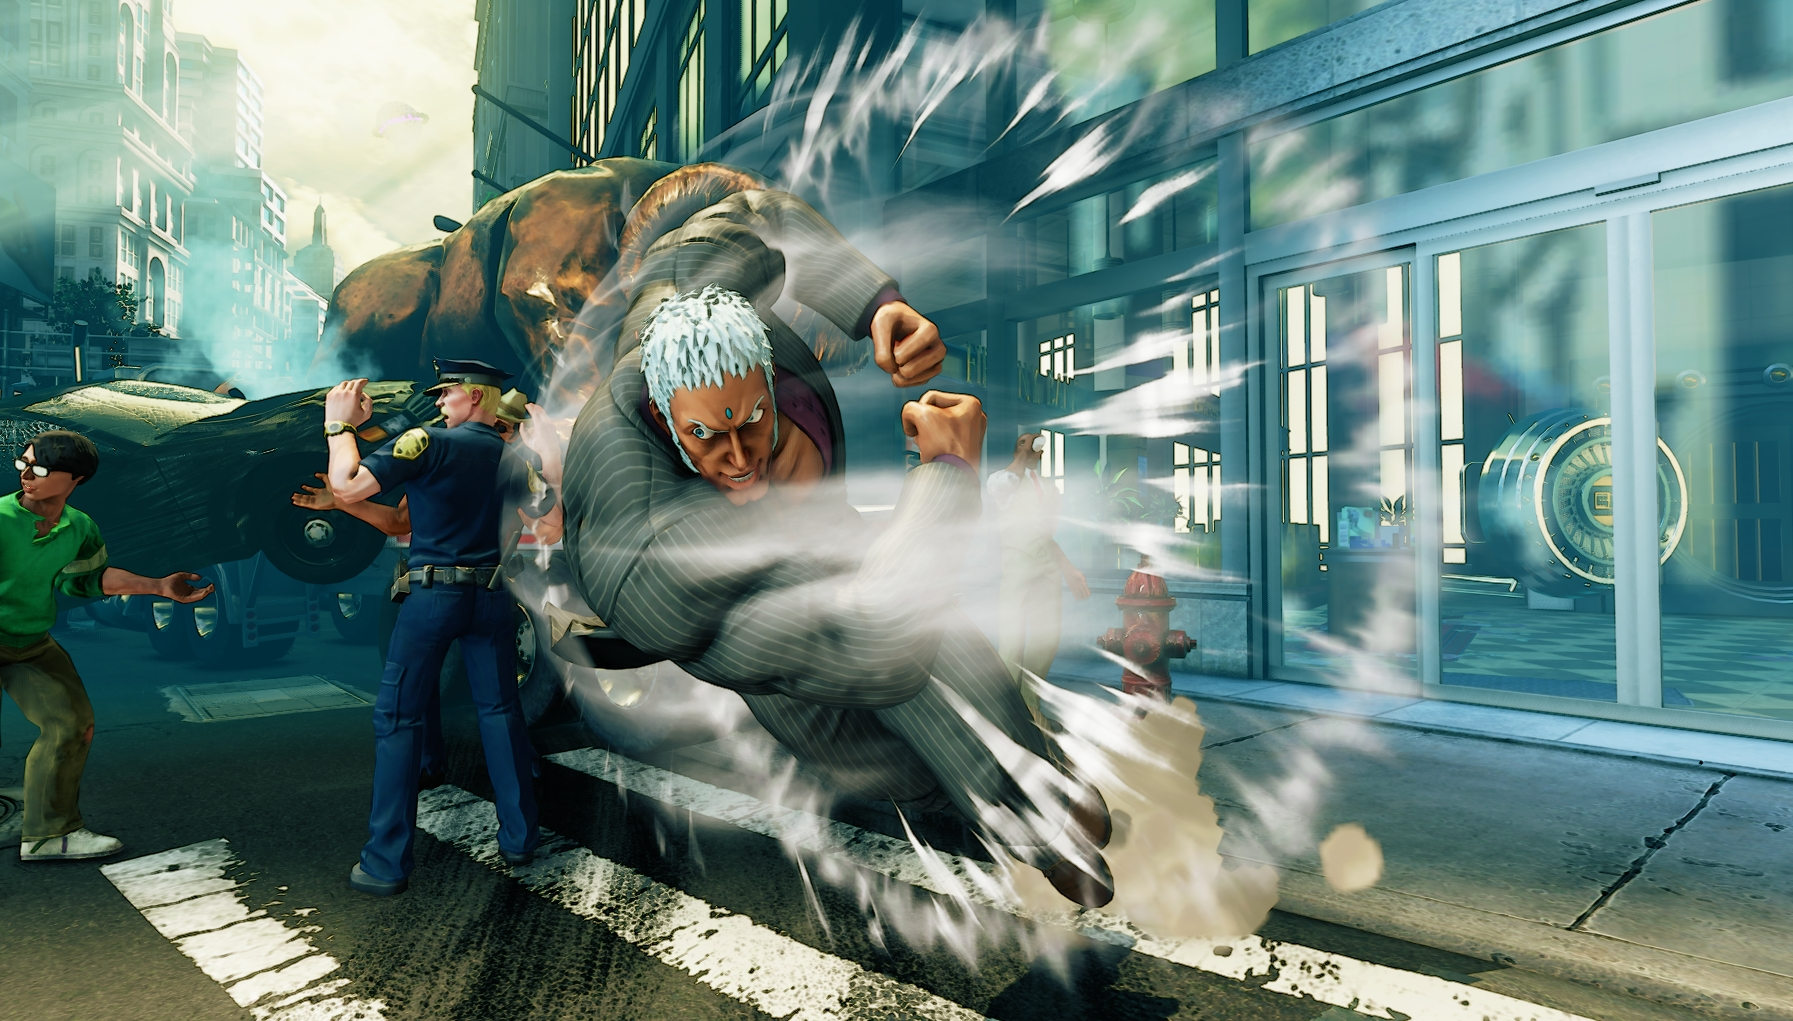 street-fighter-v-screenshot-060